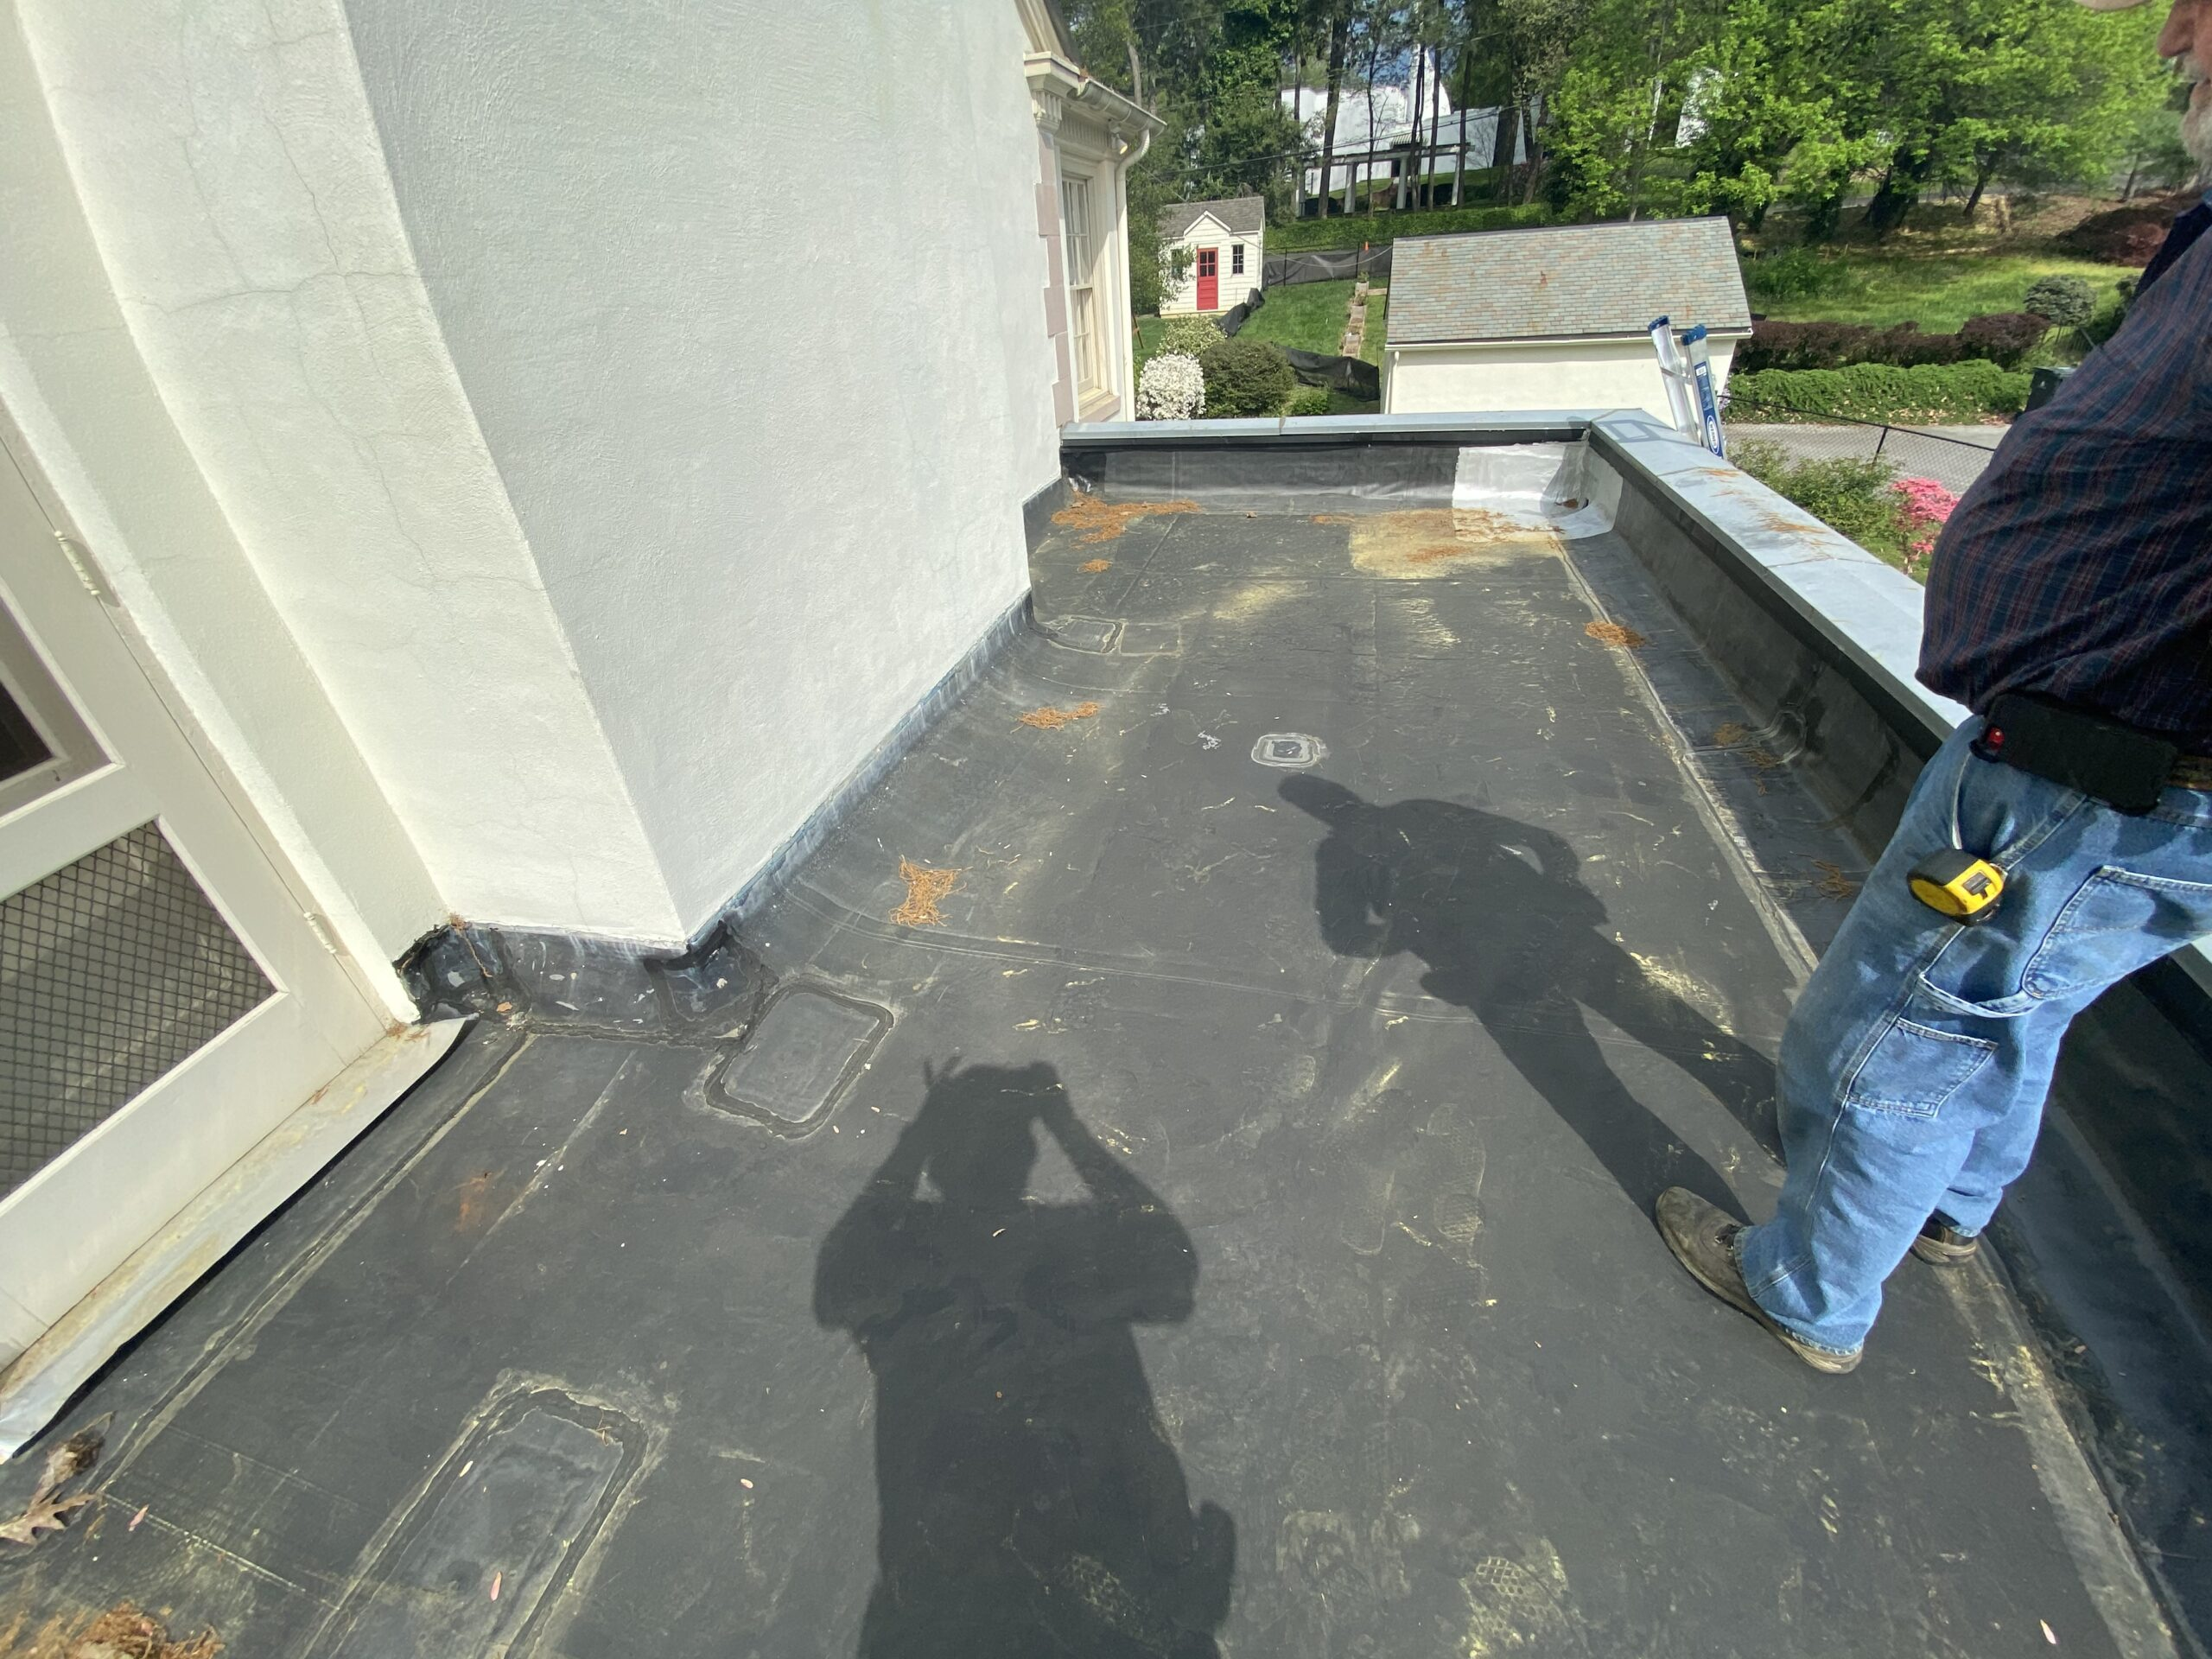 This is a picture of a black EPDM flat roof that has had repairs done to it